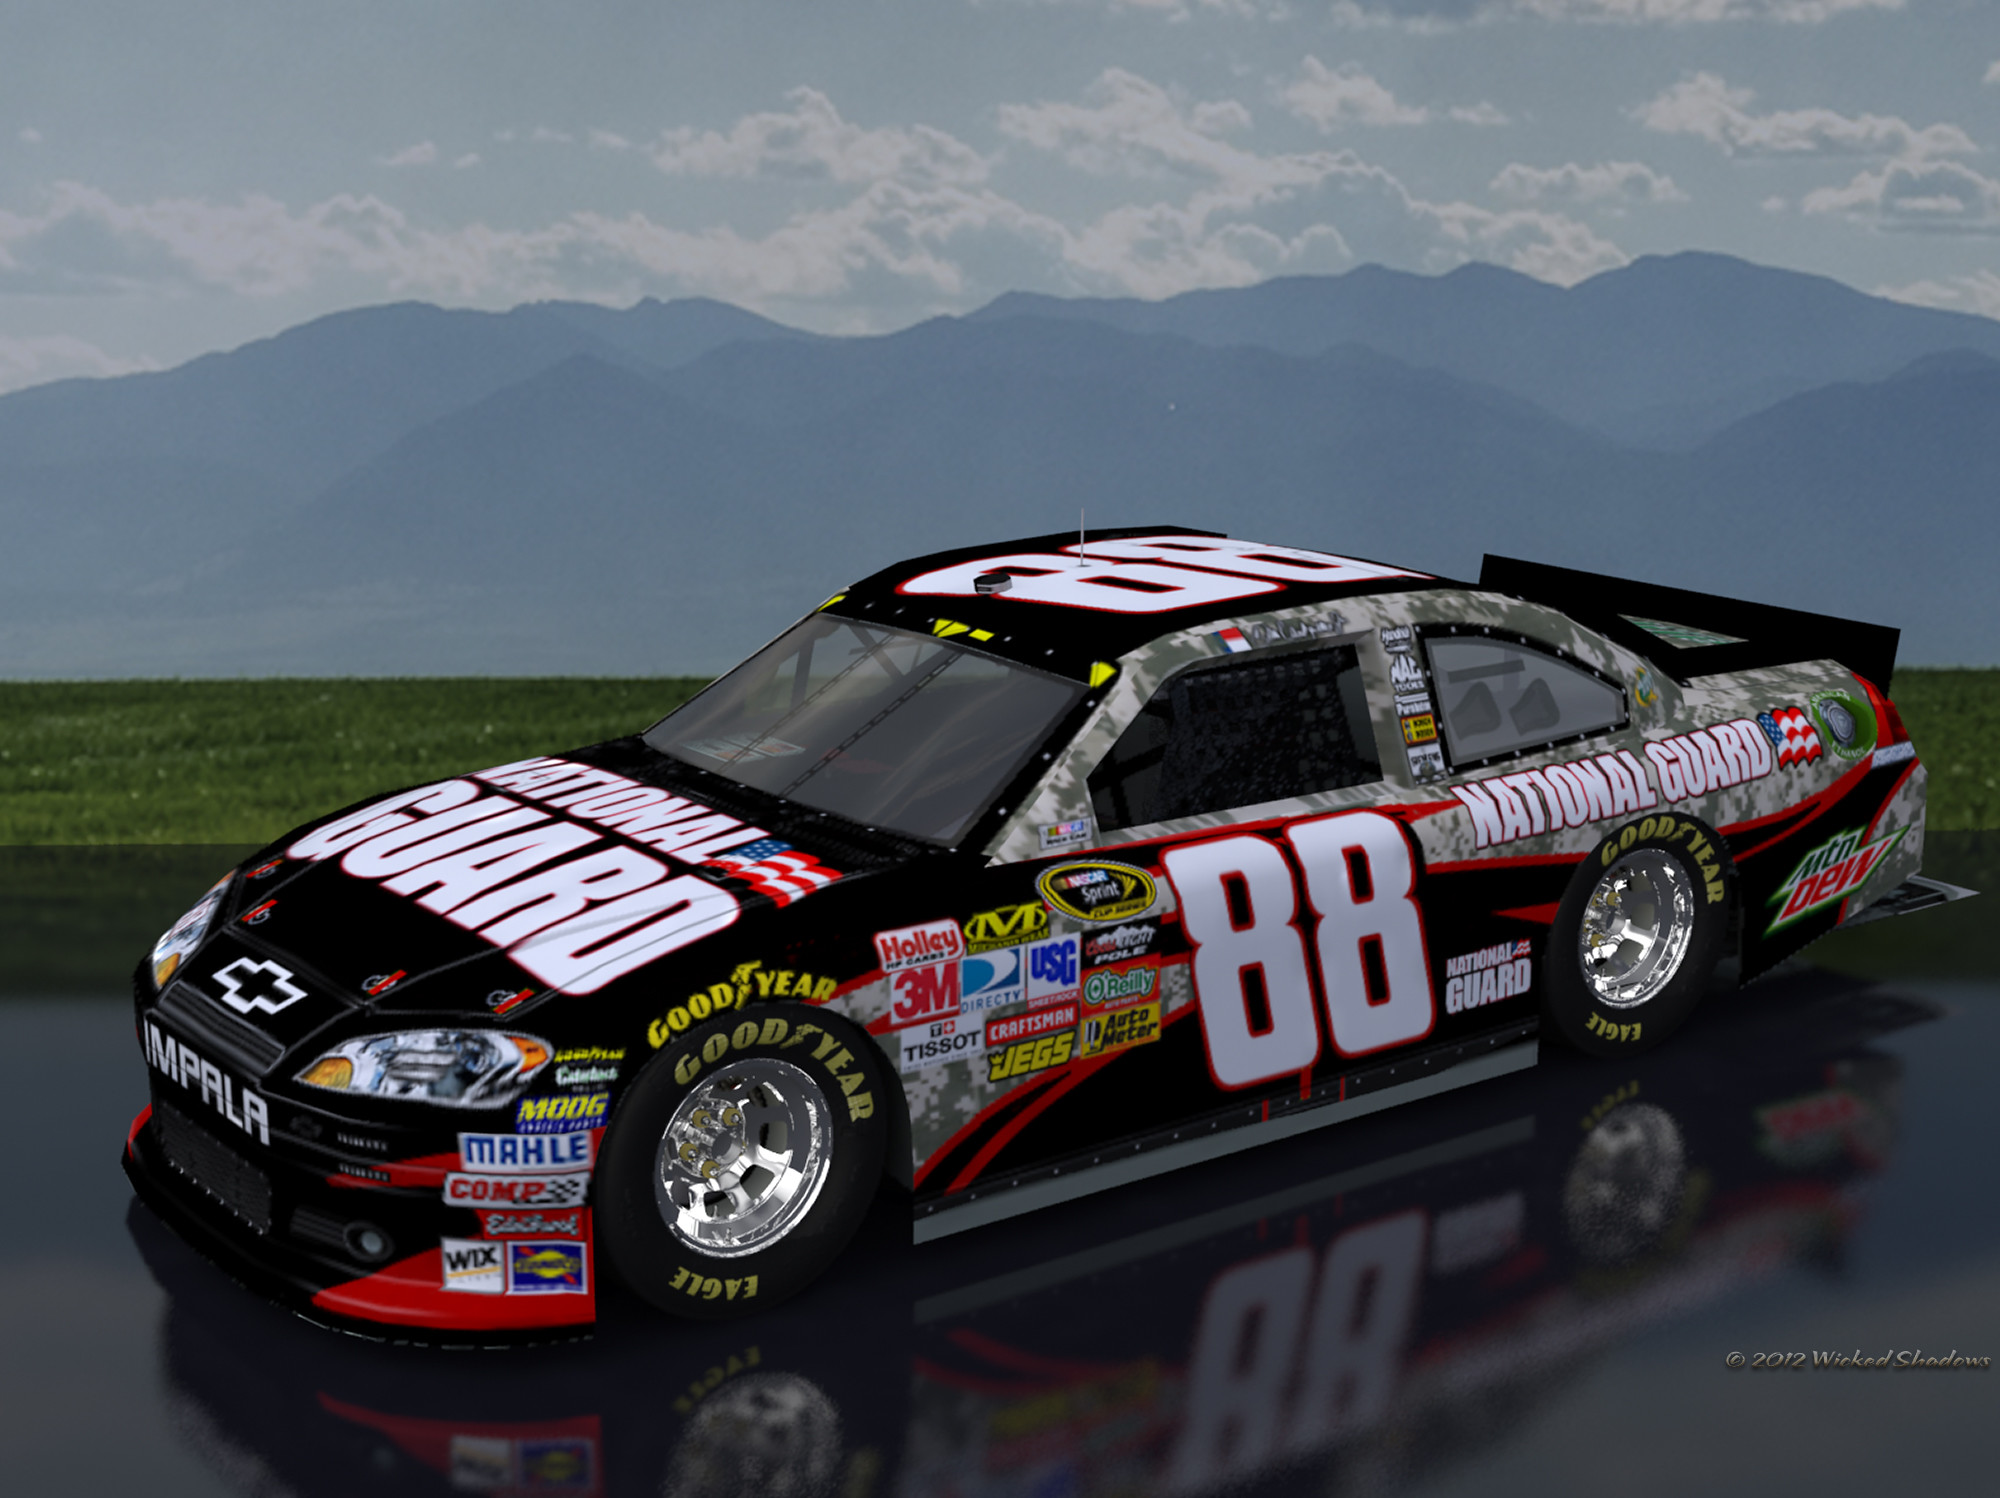 2000x1498 ... wallpapers by wicked shadows dale earnhardt jr national guard ...